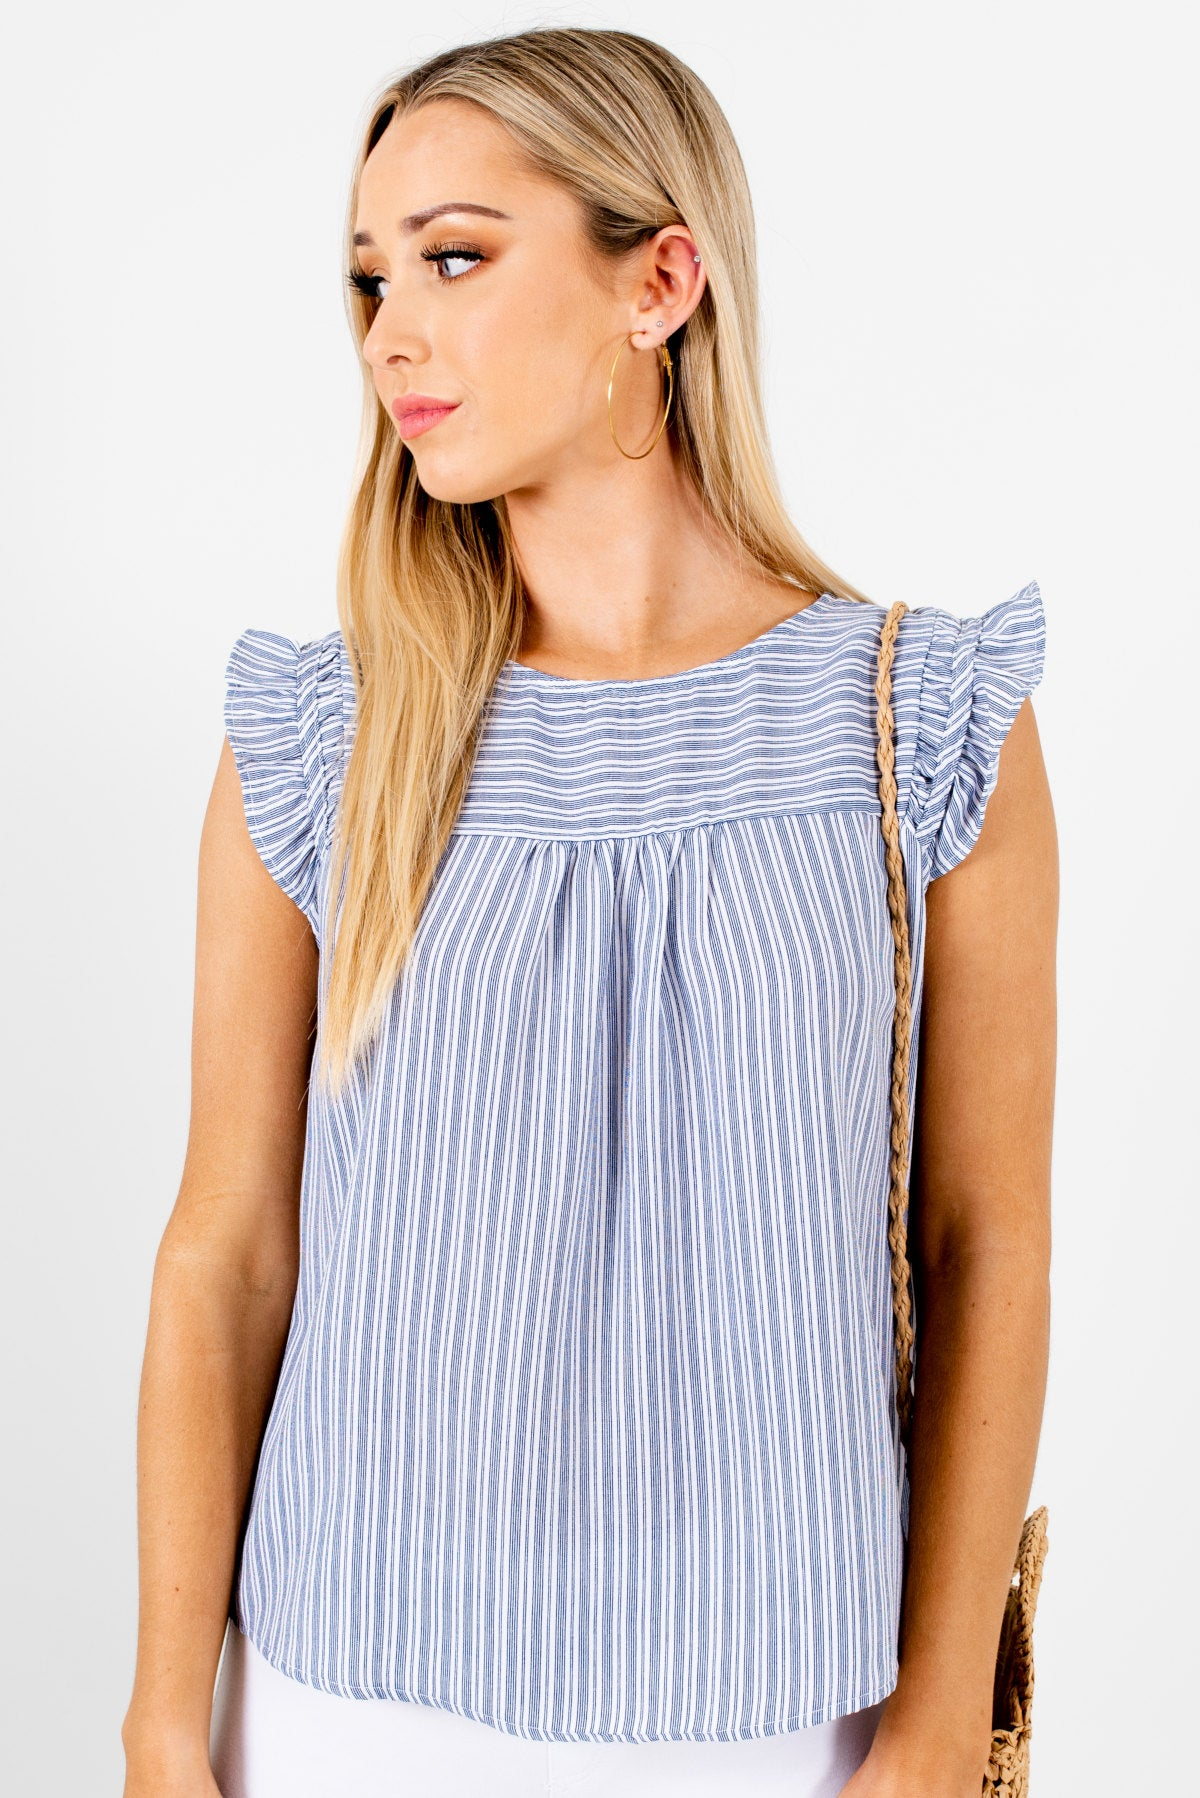 Navy Blue and White Striped Boutique Tops for Women